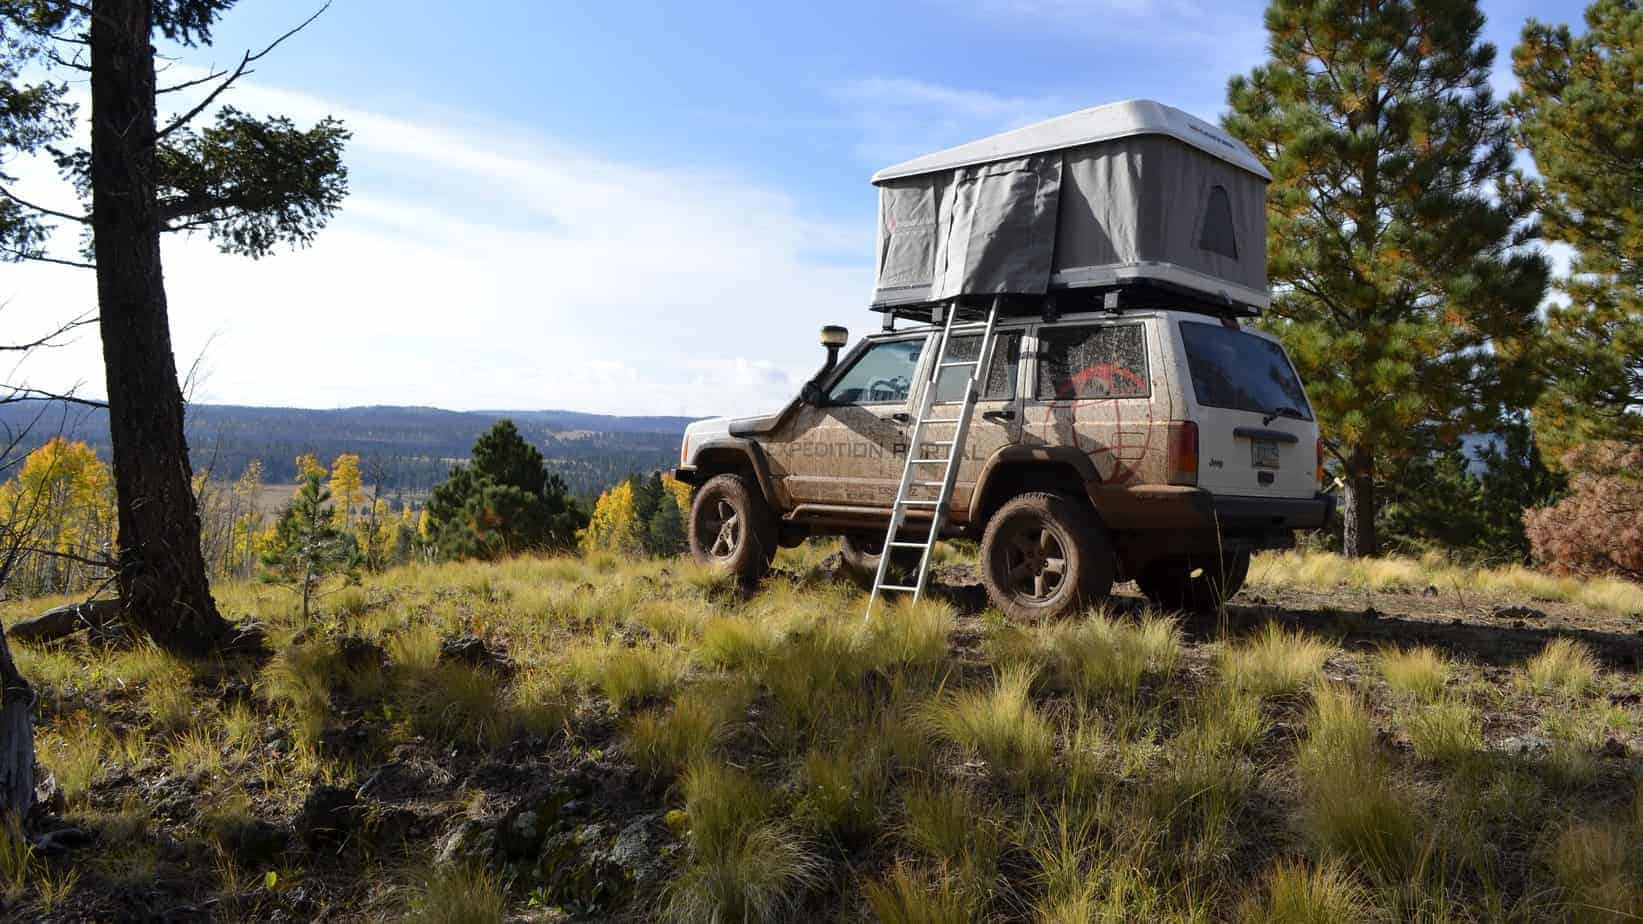 Living with the Maggiolina Extreme Tent